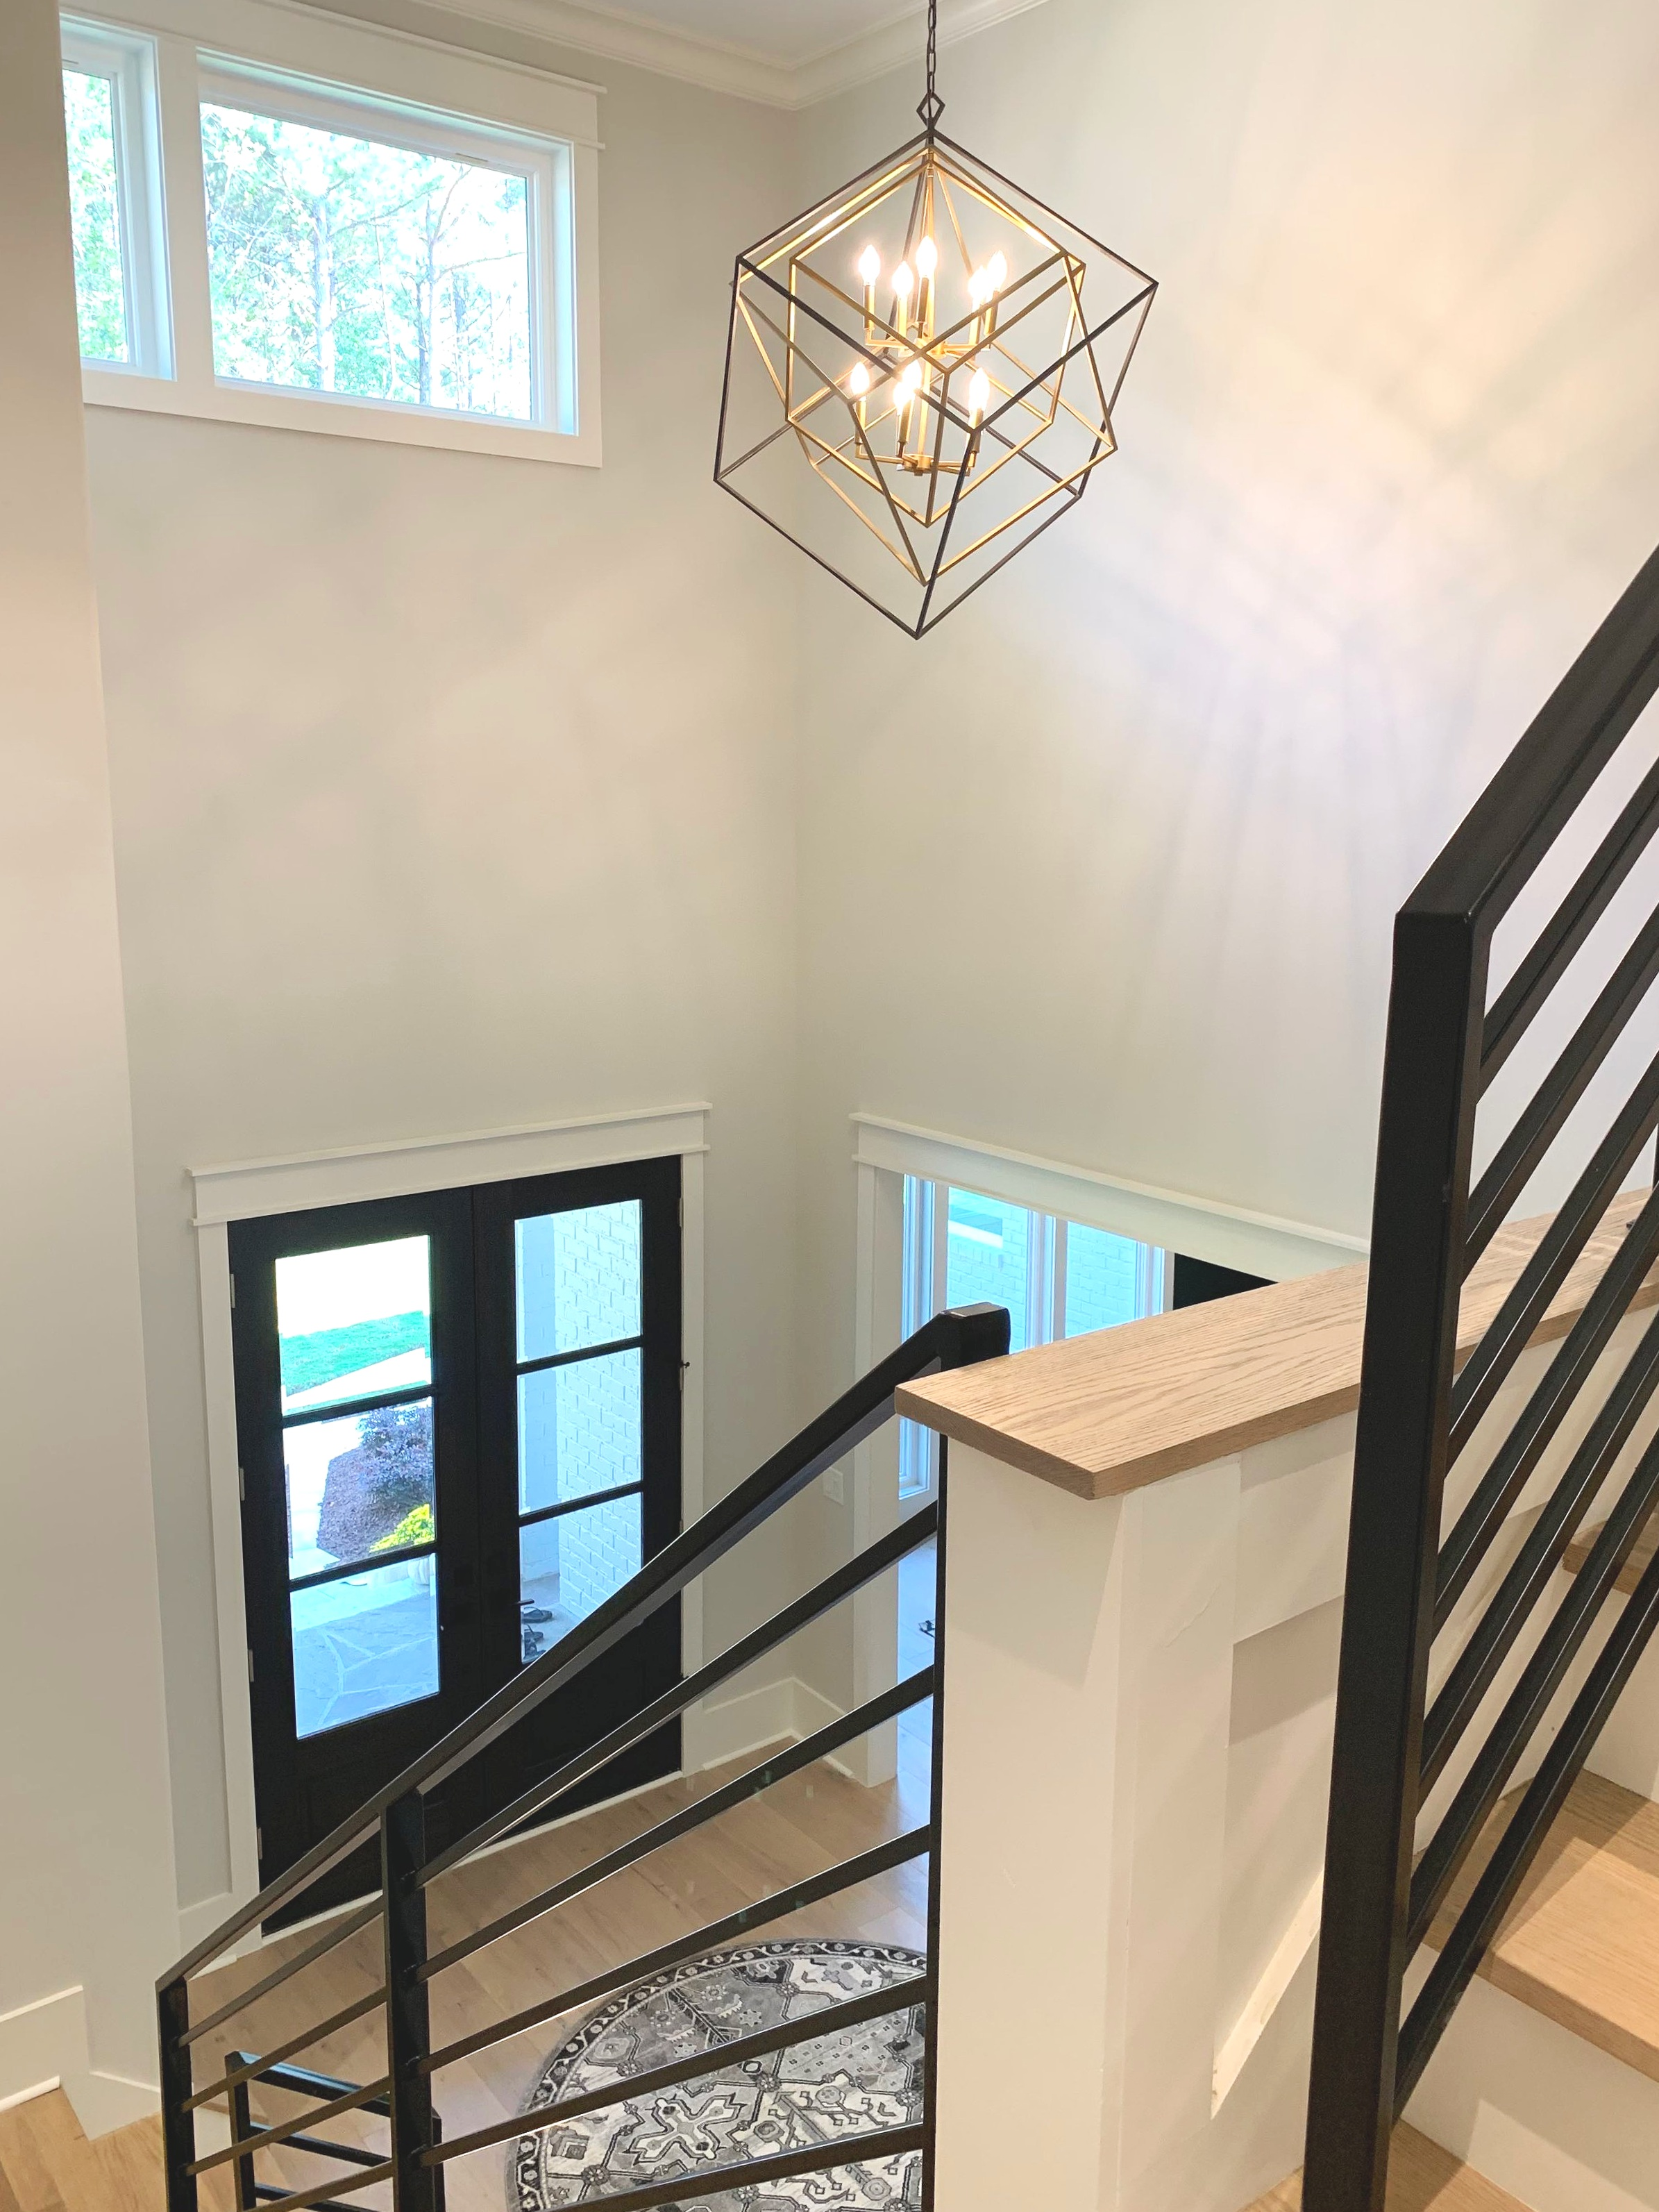 Modern, transitional, contemporary, updated traditional home with metal railings on staircase and contemporary lighting.